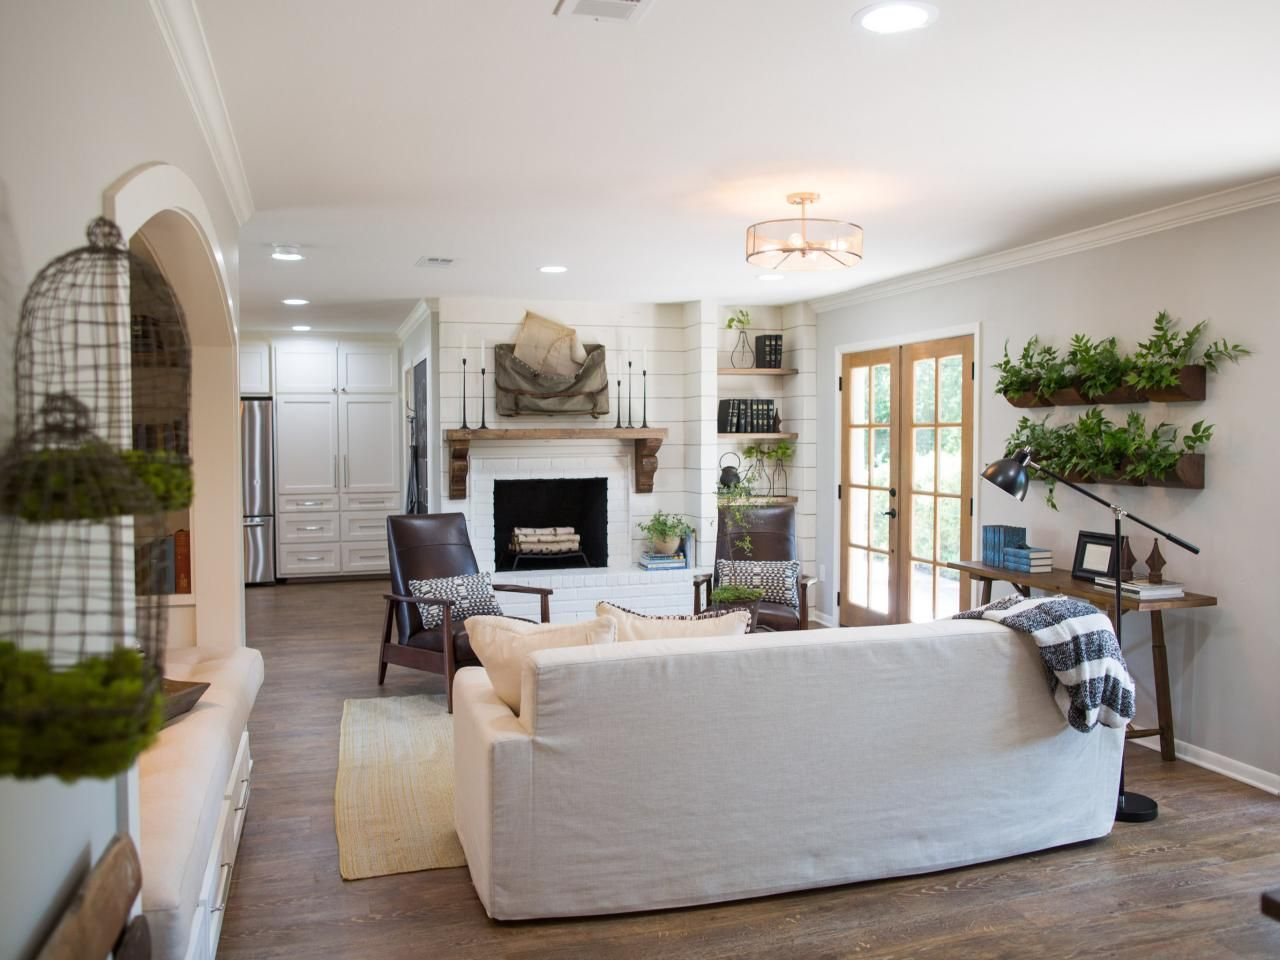 Photos | HGTV's Fixer Upper With Chip and Joanna Gaines ...